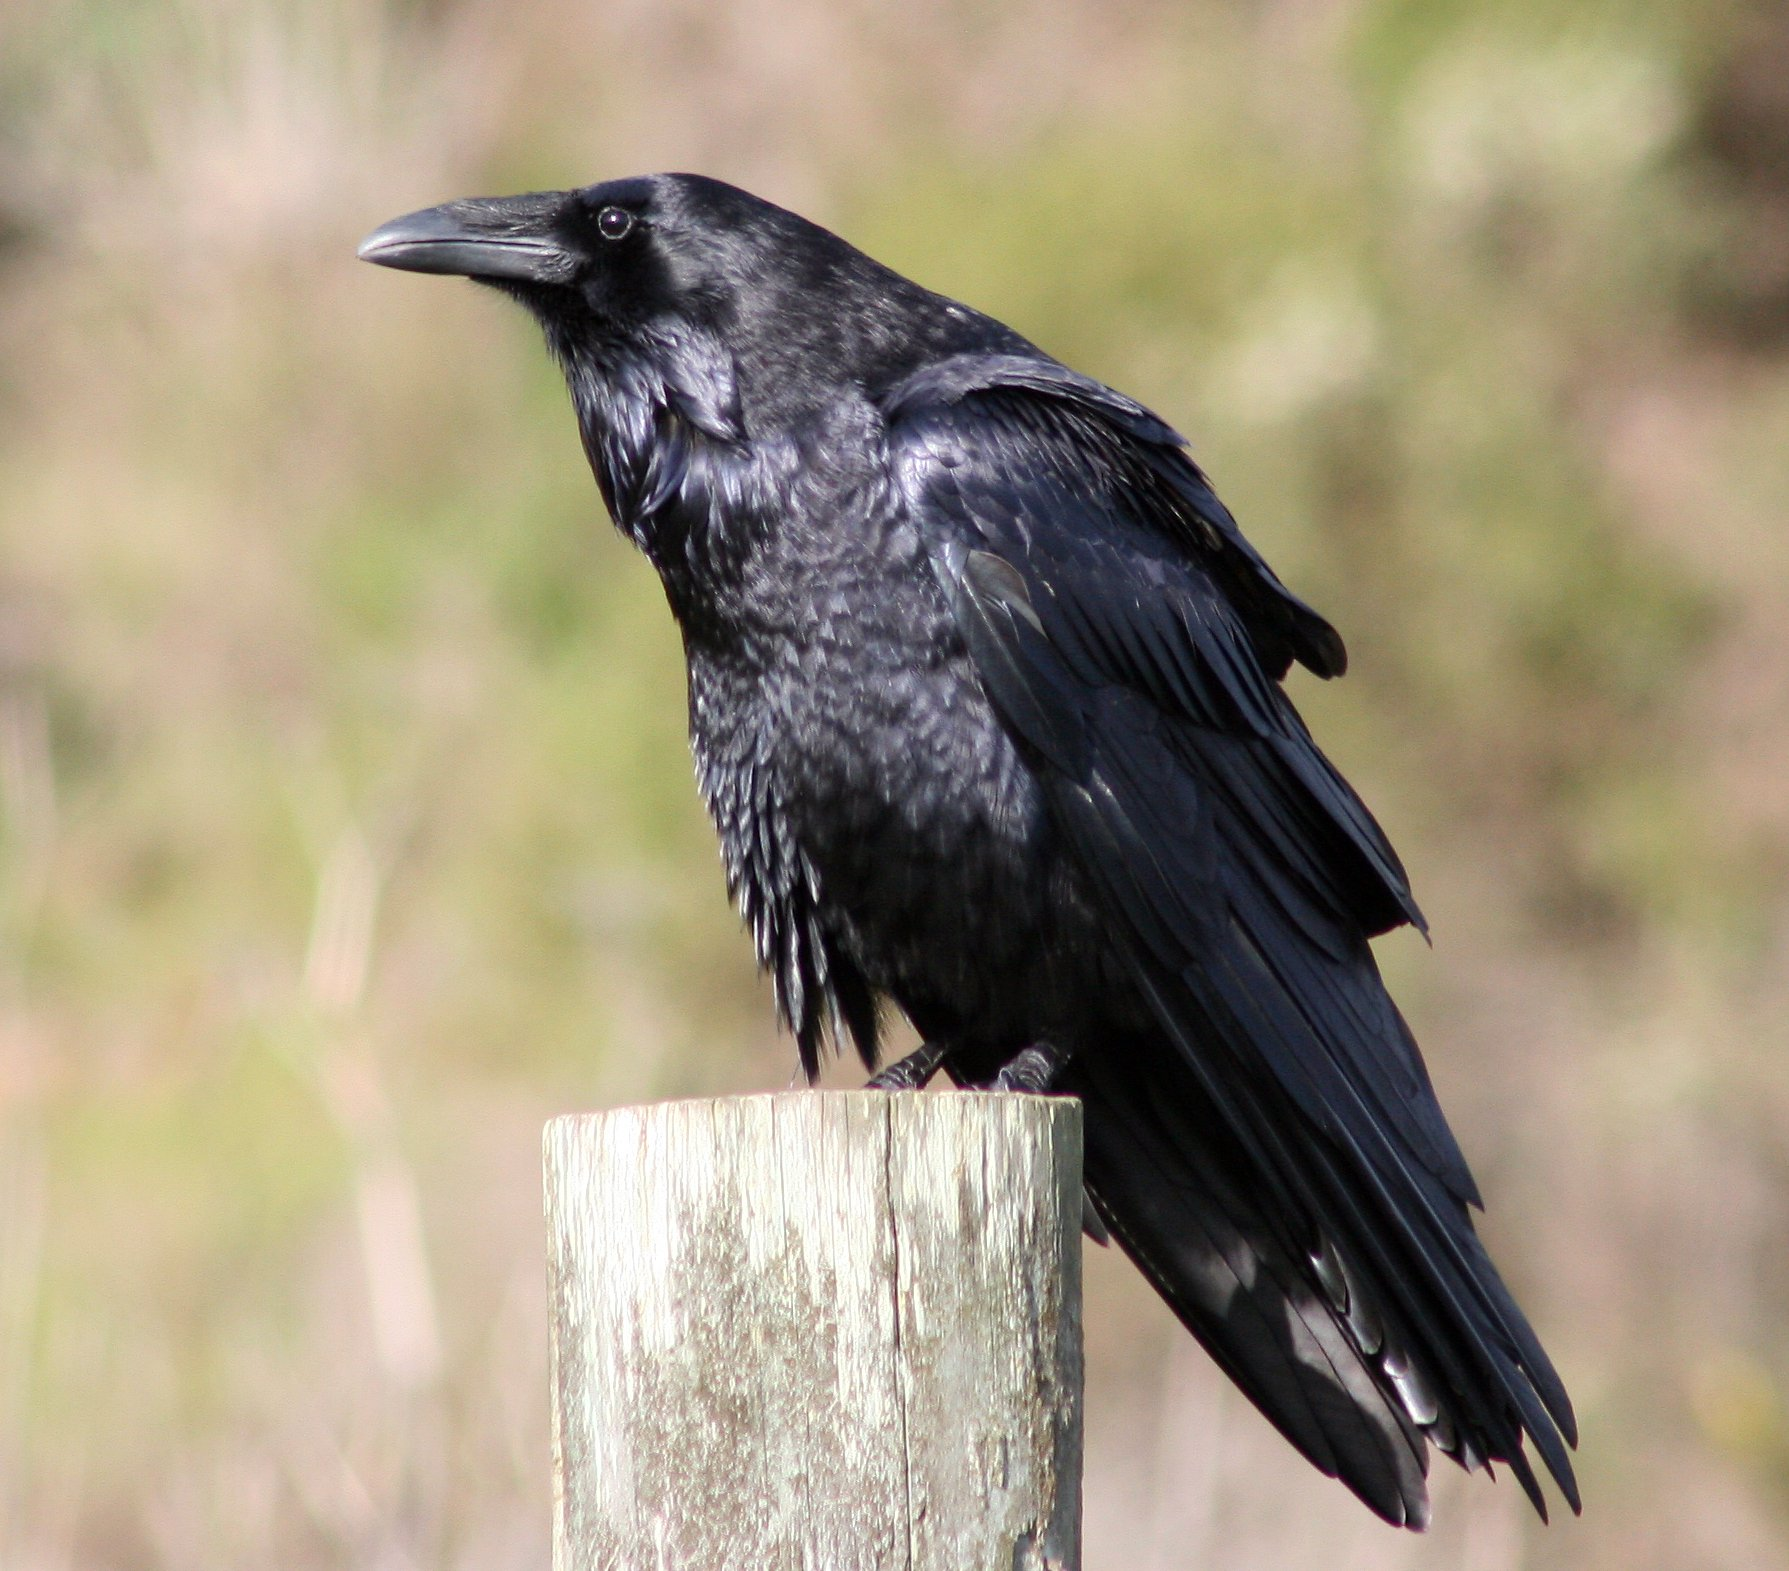 Corvus corax/Common Raven